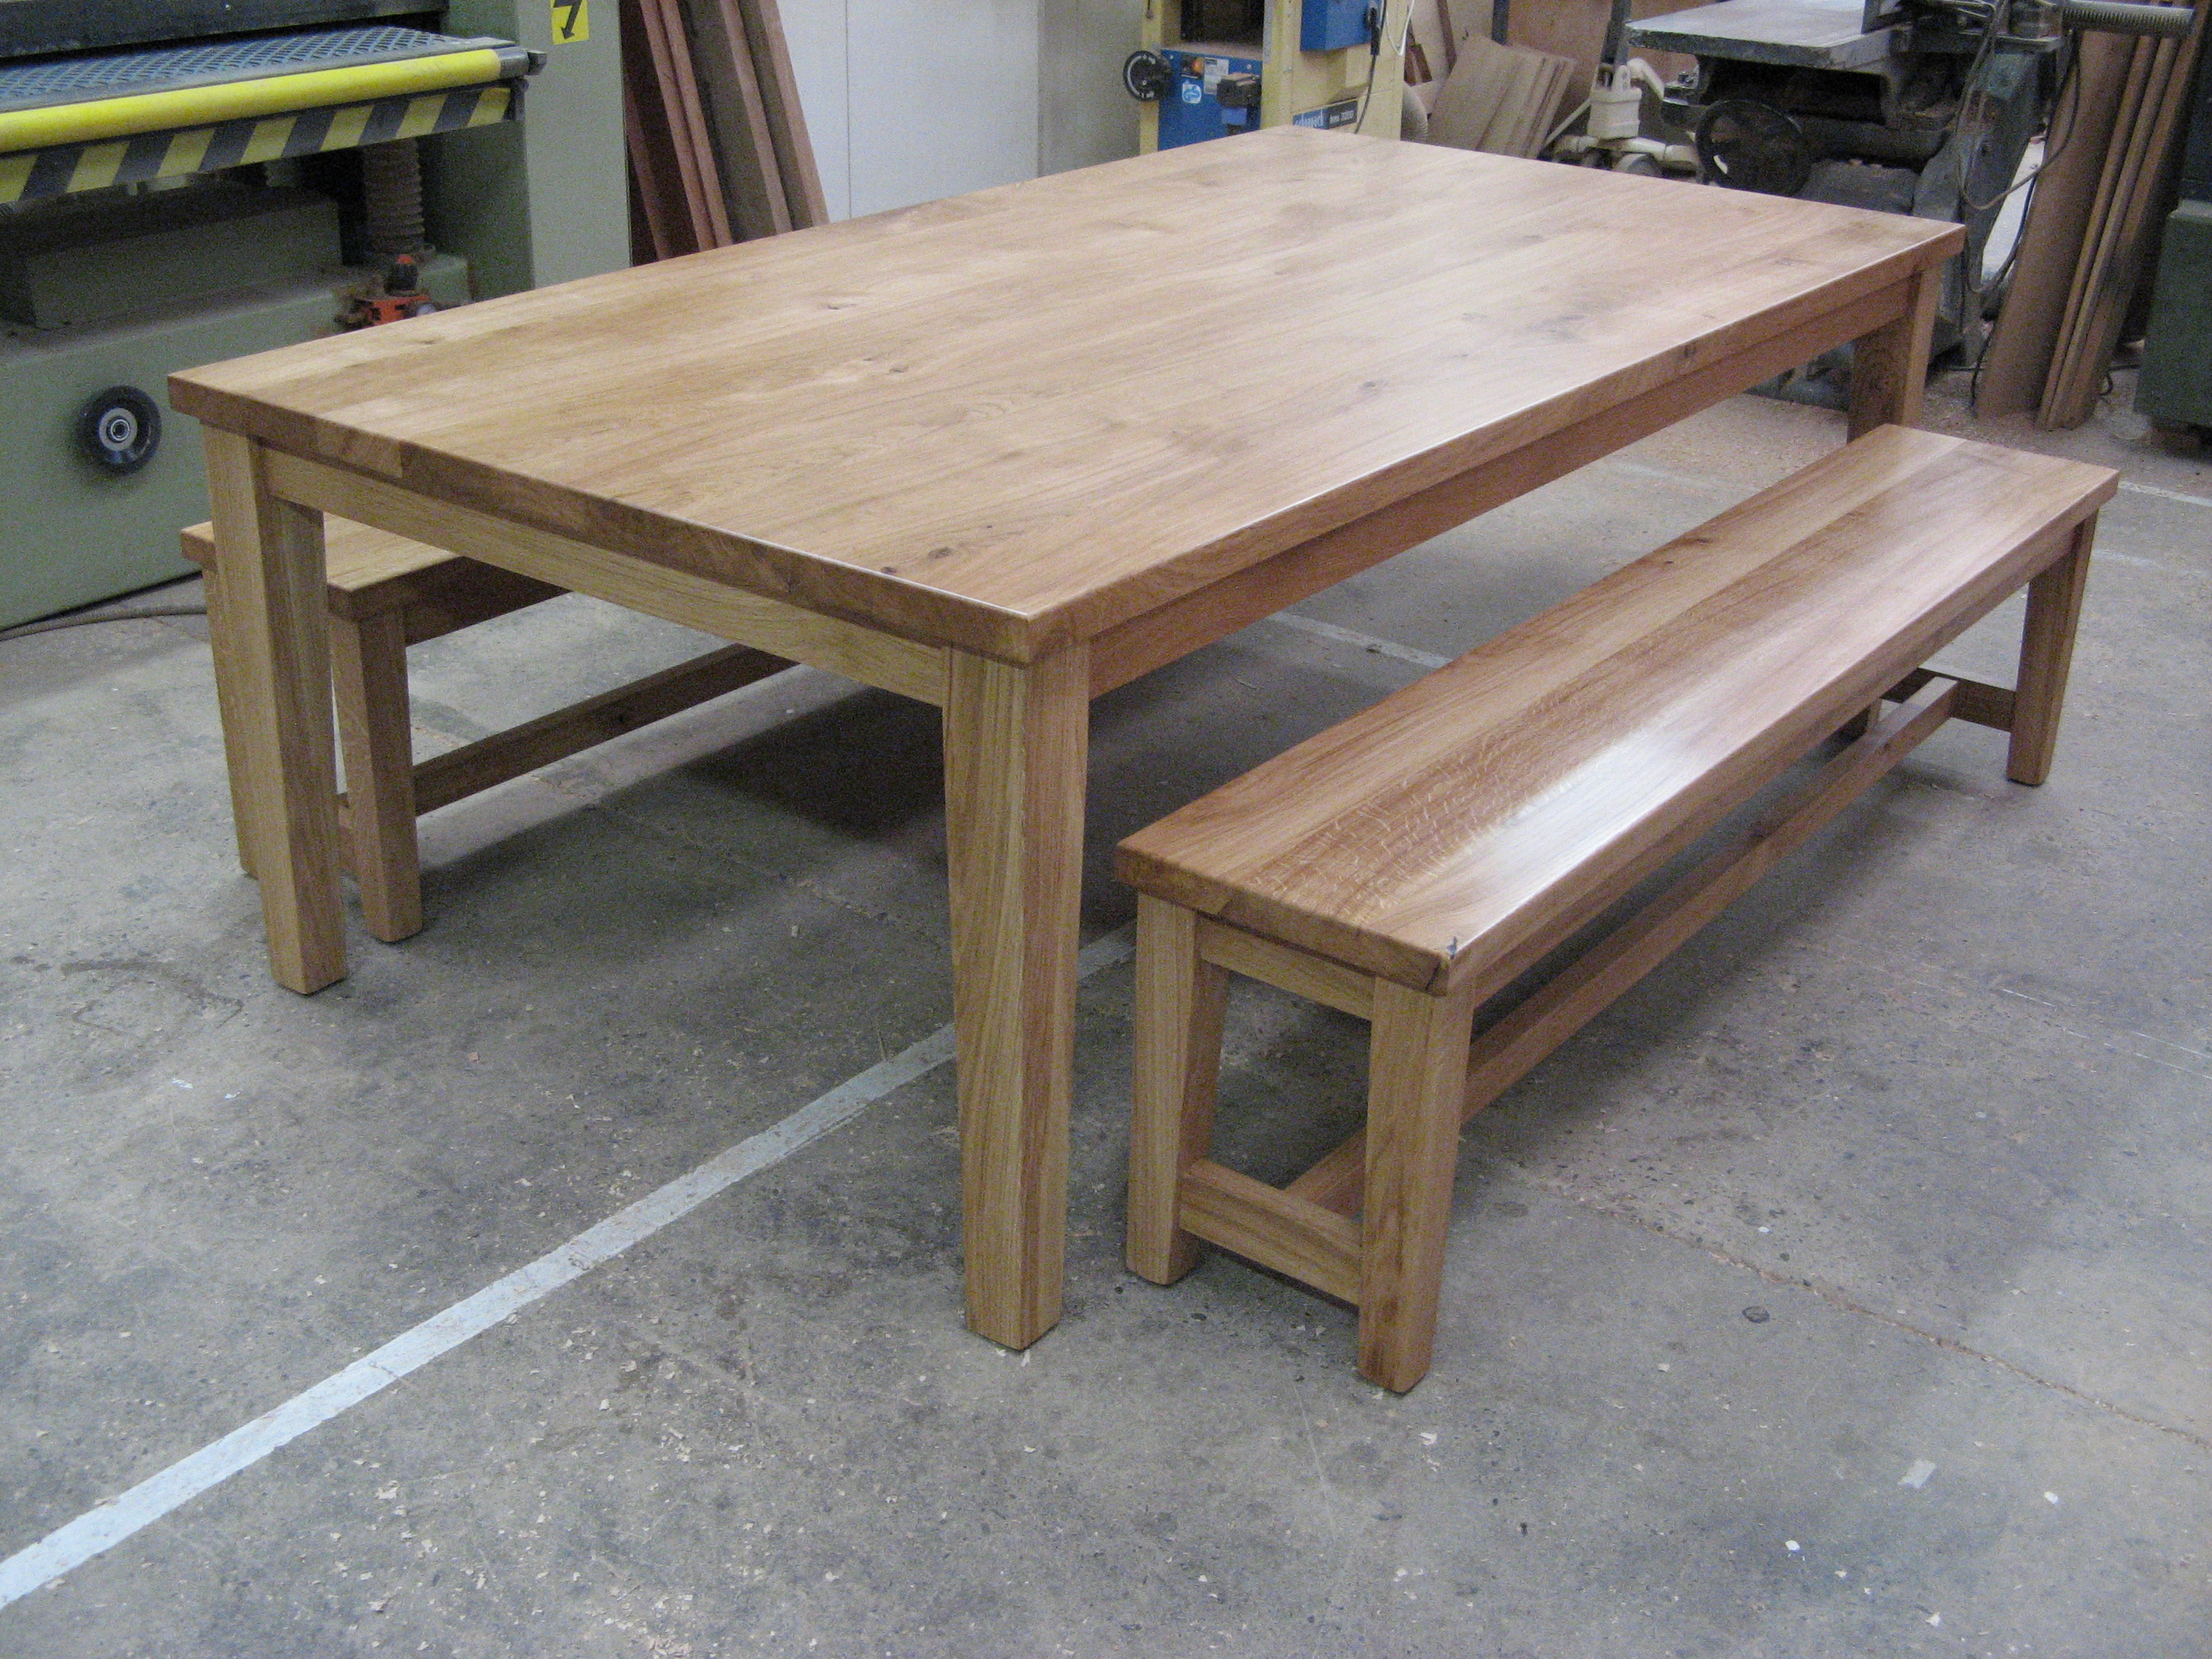 New York Table & Bench Seats